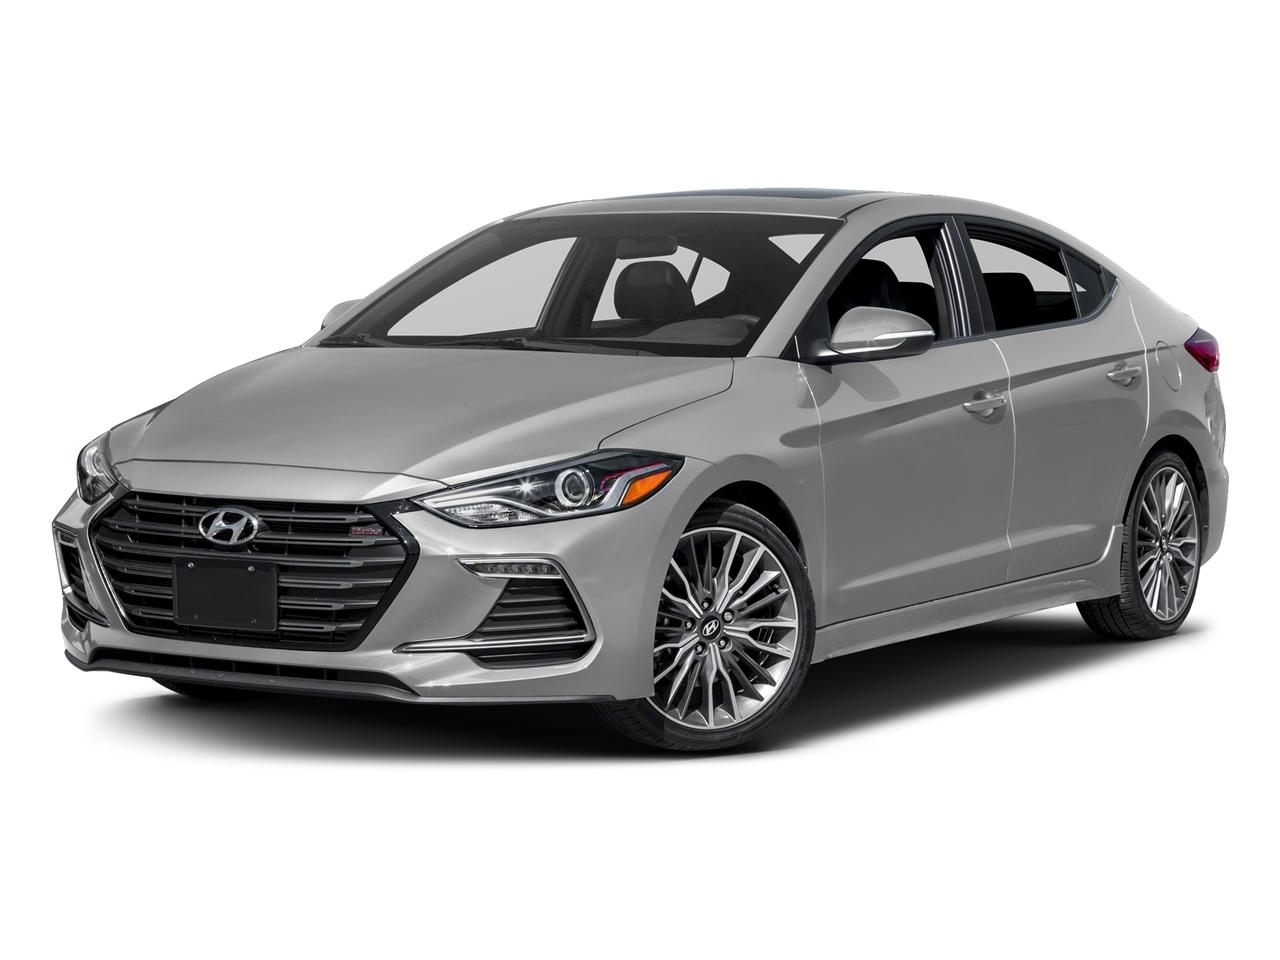 2018 Hyundai Elantra Vehicle Photo in Corsicana, TX 75110